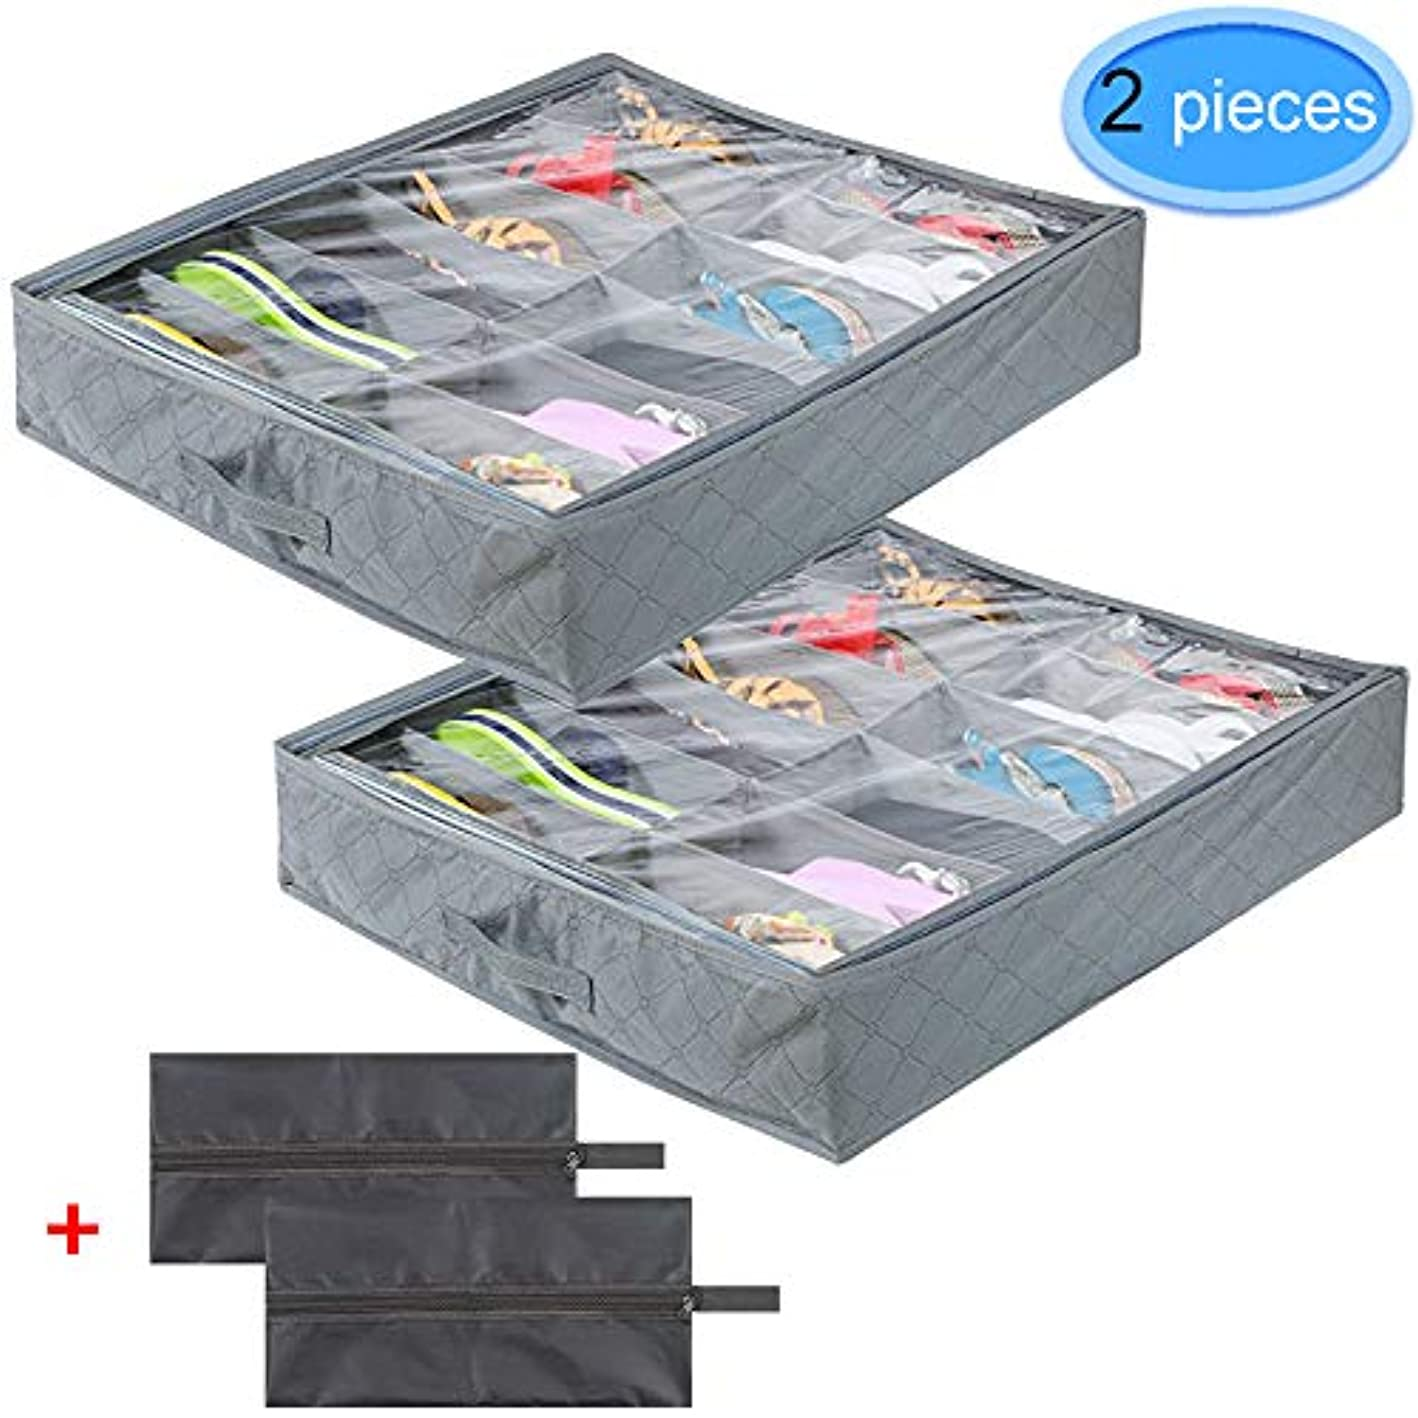 MENOLY 12 Pairs Under Bed Shoe Organizer 2 Pack, Underbed Shoes Storage Boxes Drawer Dividers Shoe Storage Container (Gray) with 2 Pack Black Travel Shoe Bags